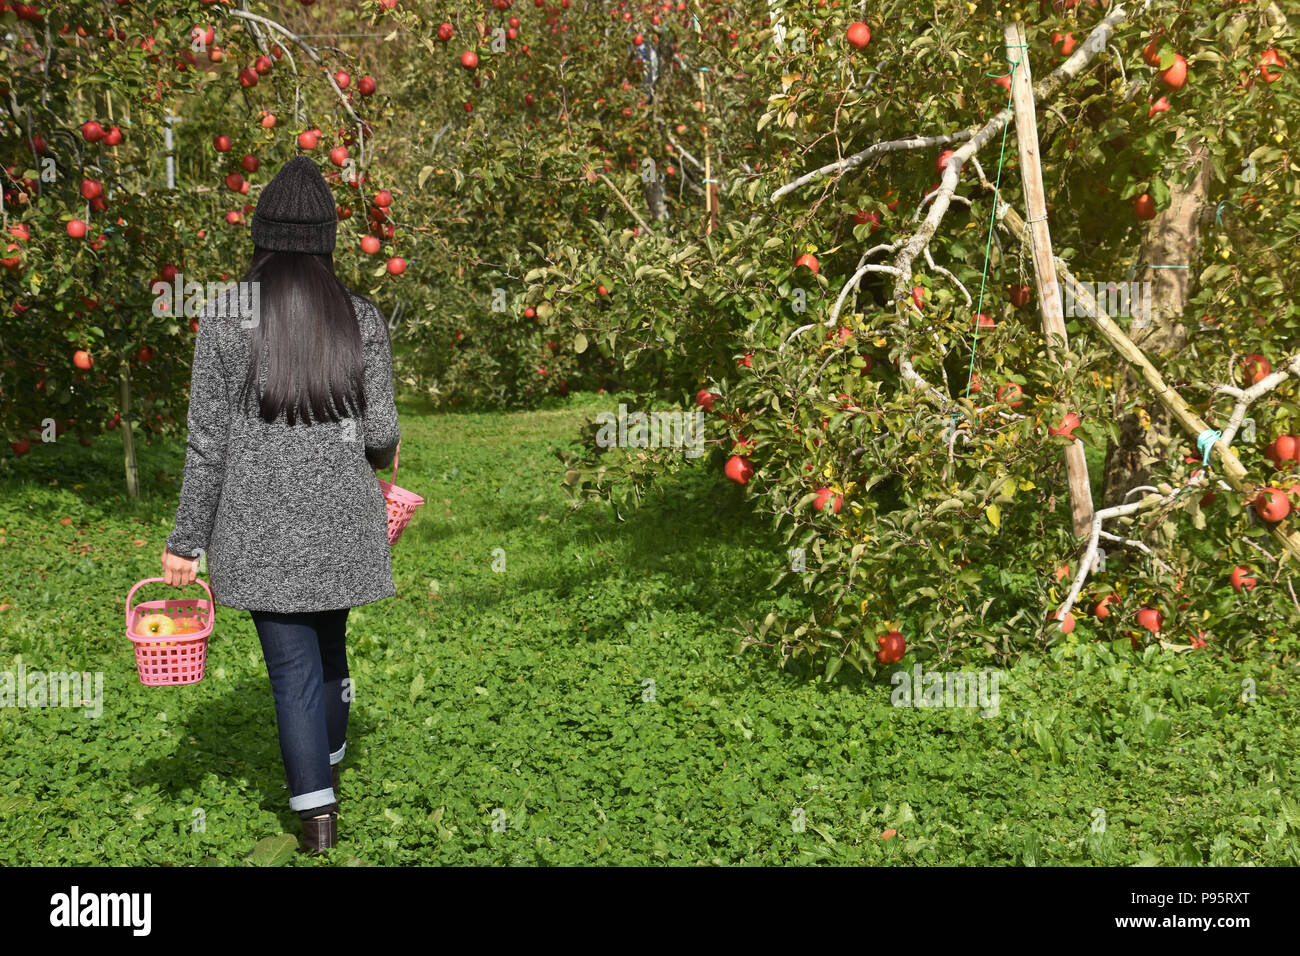 Havesting in Fall Season Concept. Back side of Farmer Woman with Basket walking into the Apple Orchard for Picking Fruits - Stock Image